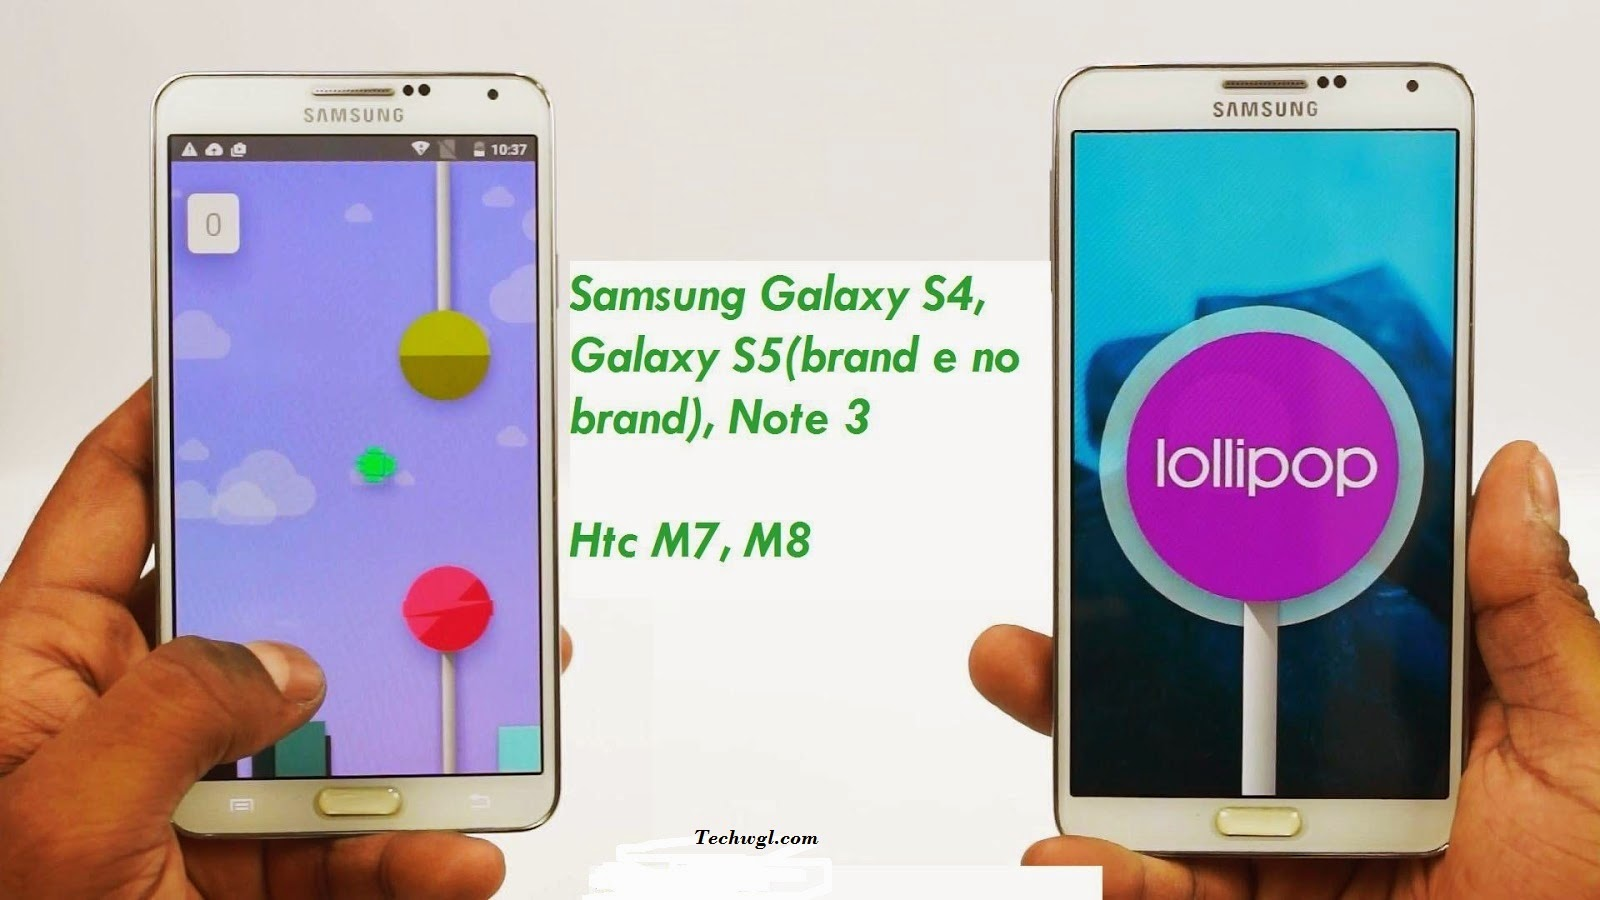 Lollipop 5.0.1, Samsung Galaxy S4, S5, Note 3, HTC M7, M8.